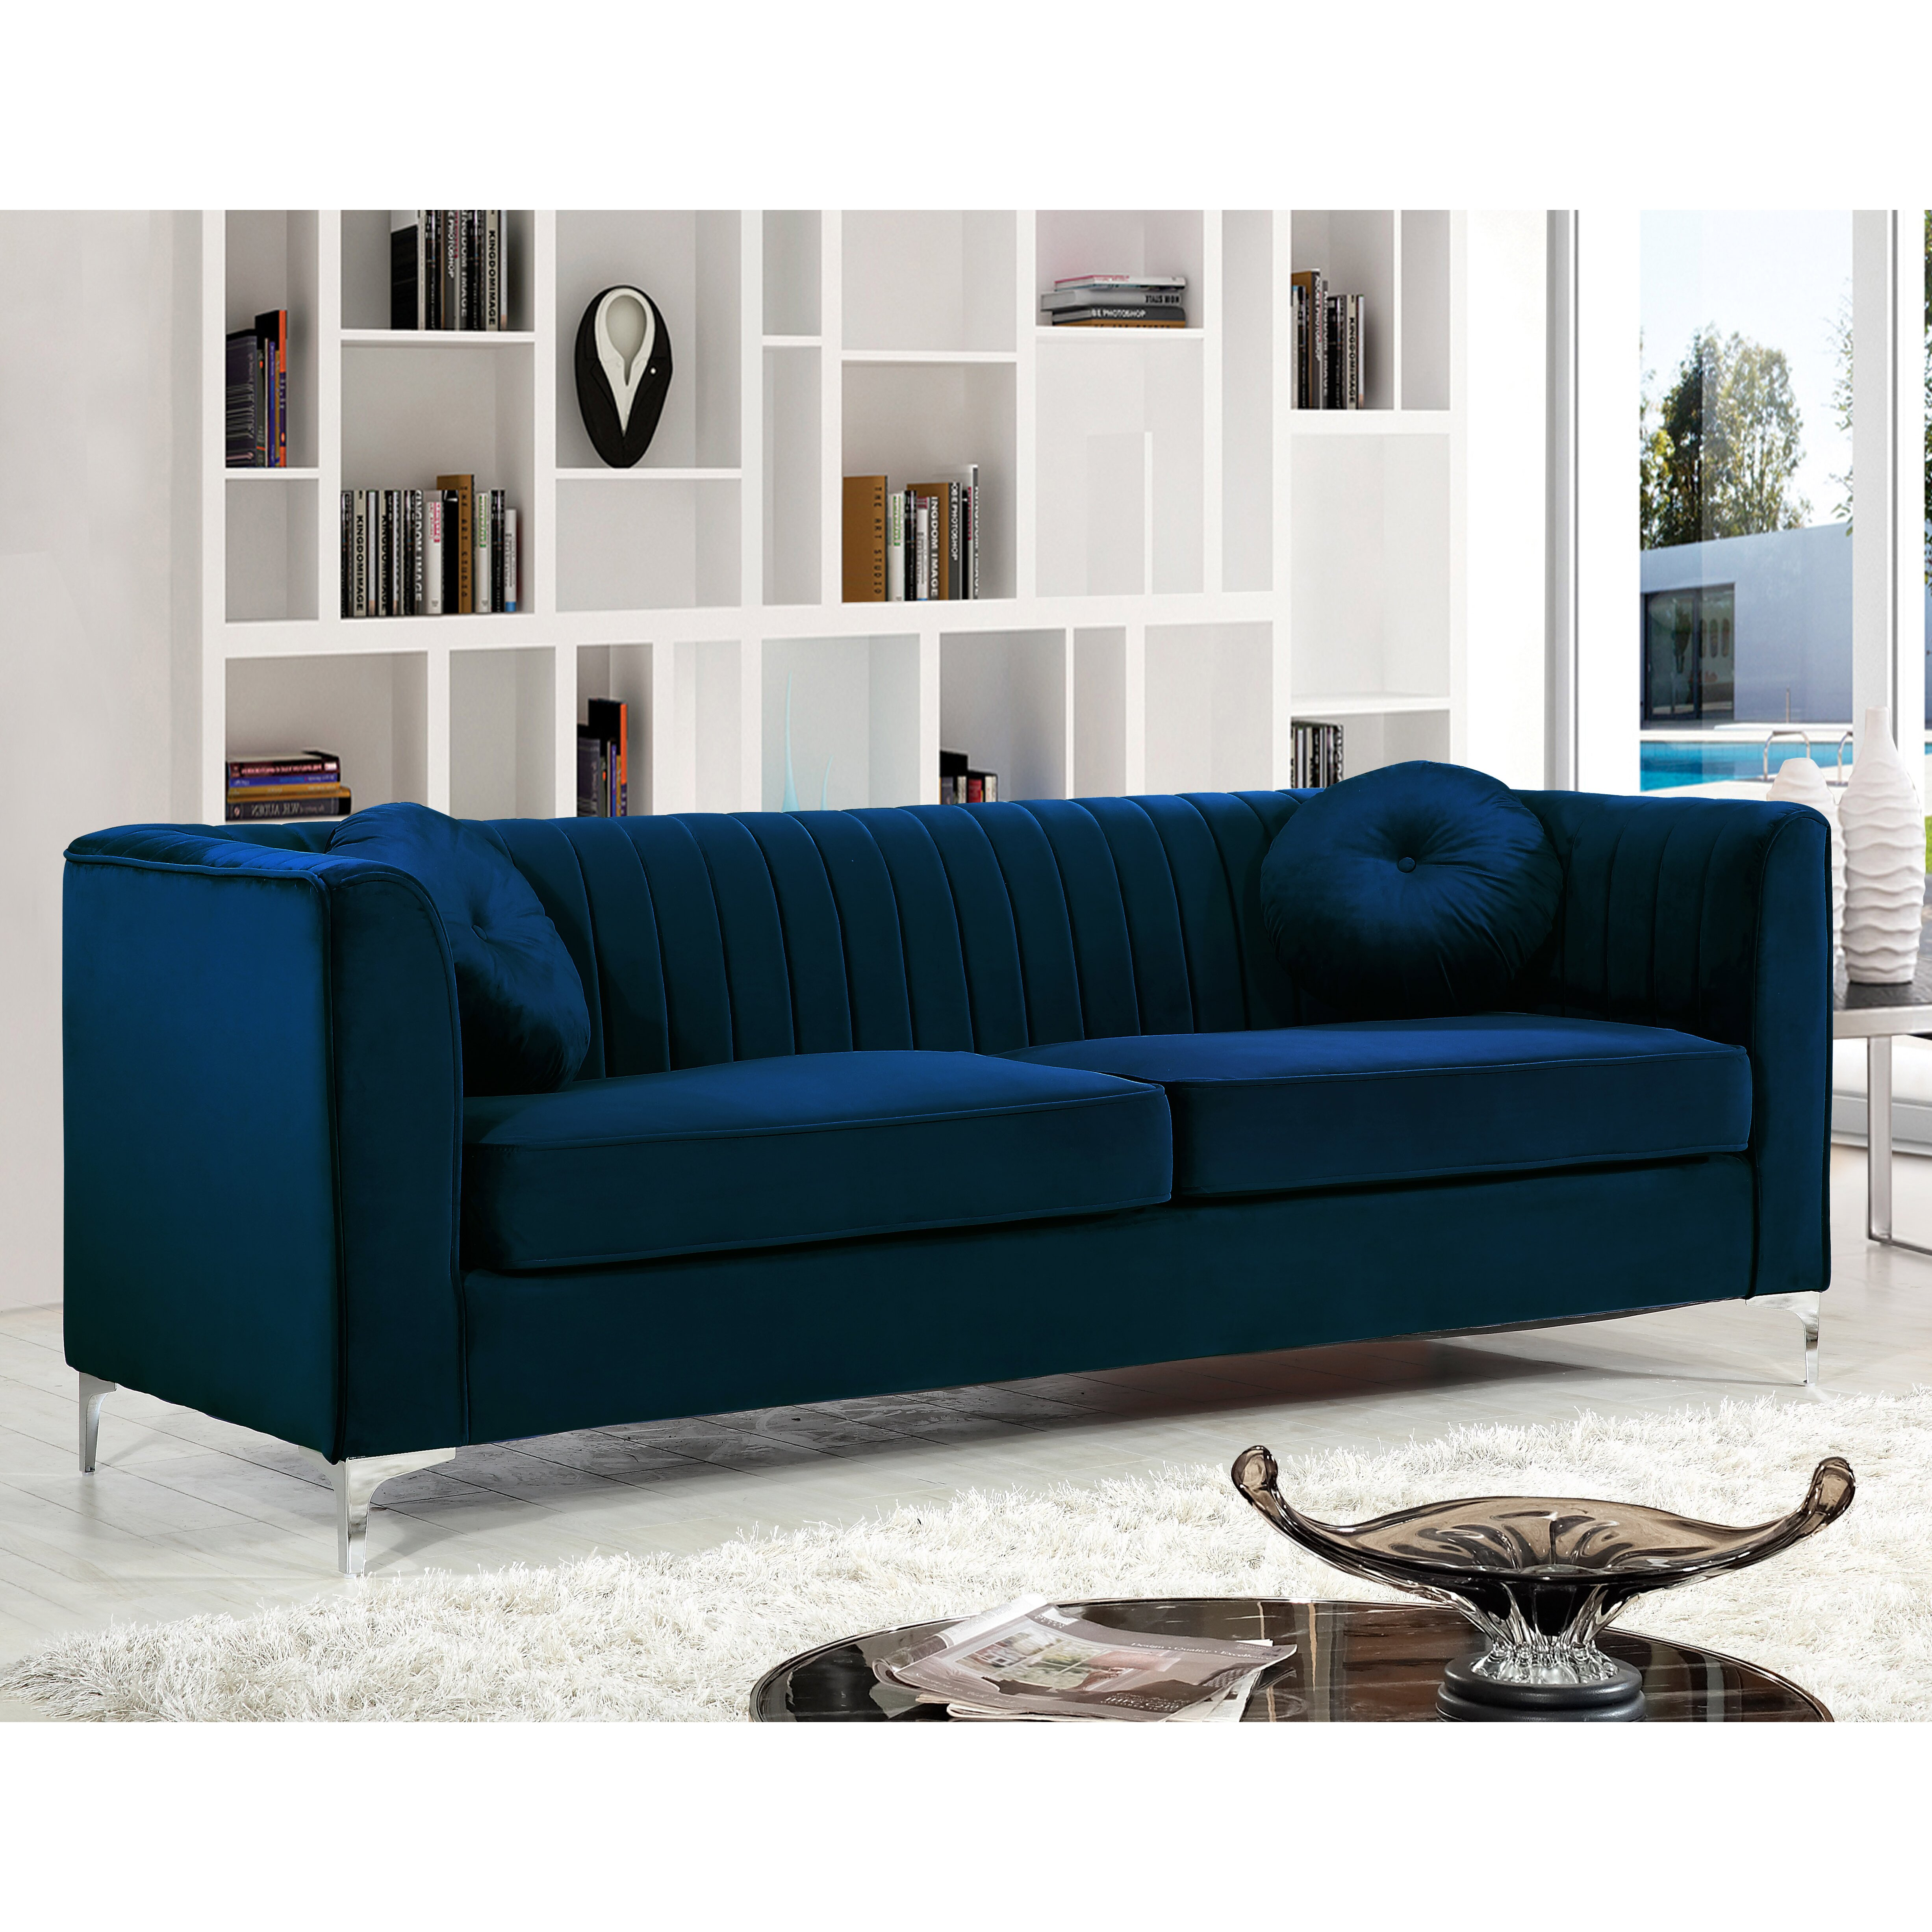 Everly quinn glenwood living room collection reviews for Blue white sofa